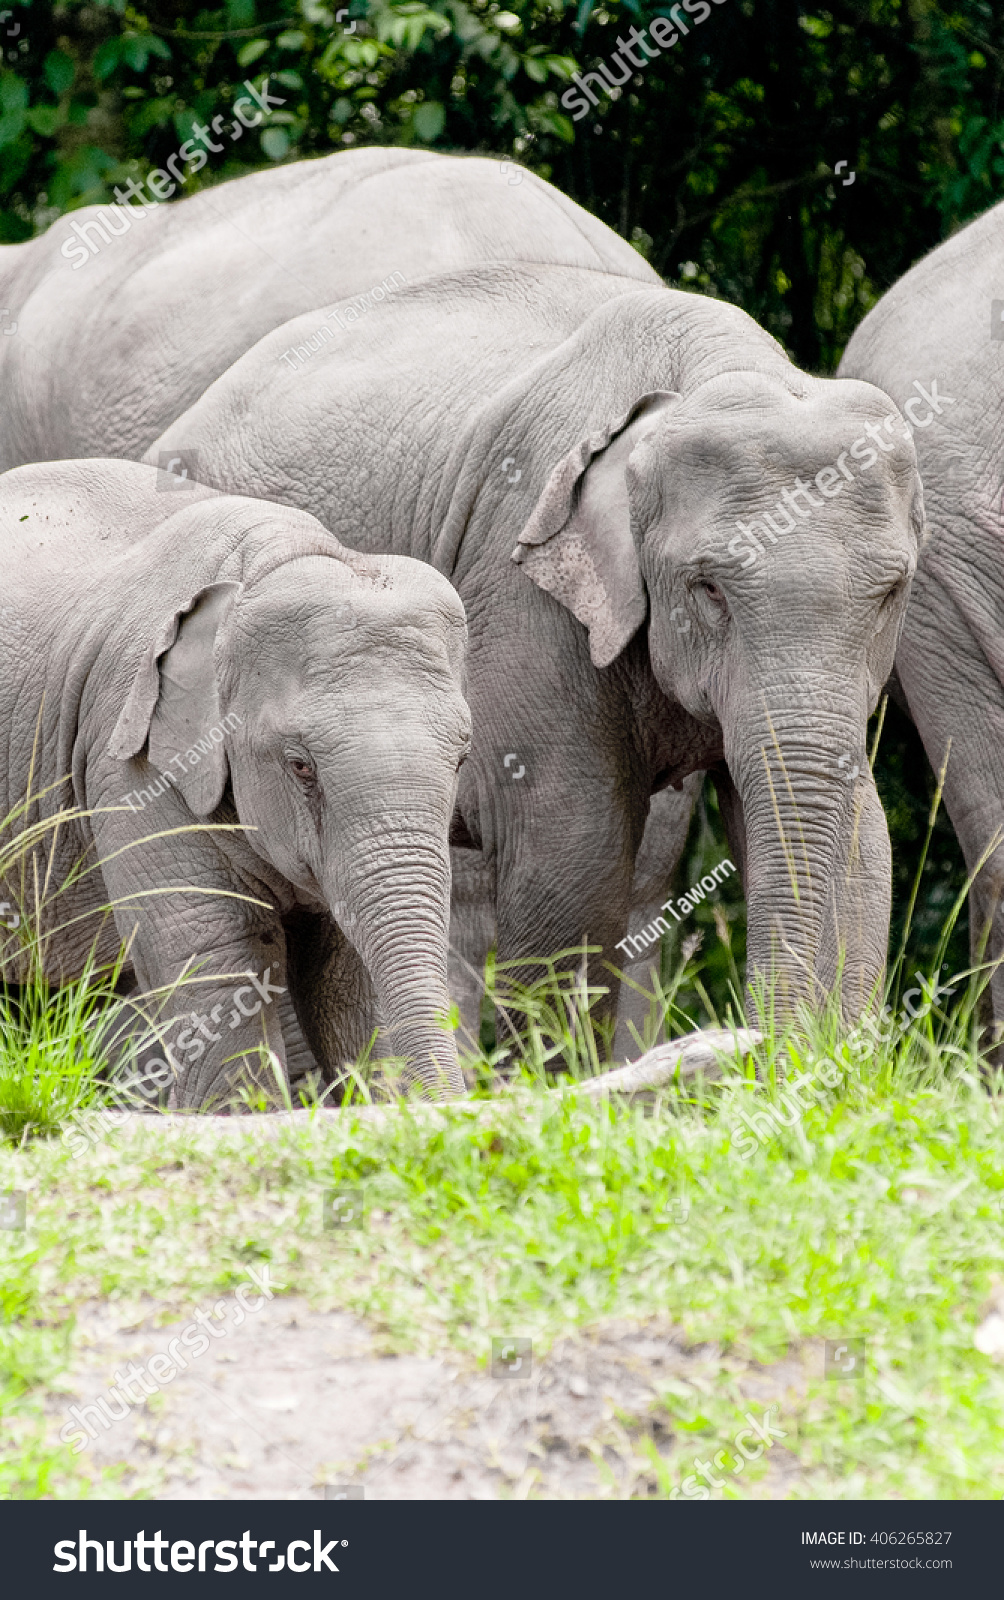 Asian Elephants In The Wild In Thailand Stock Photo ...